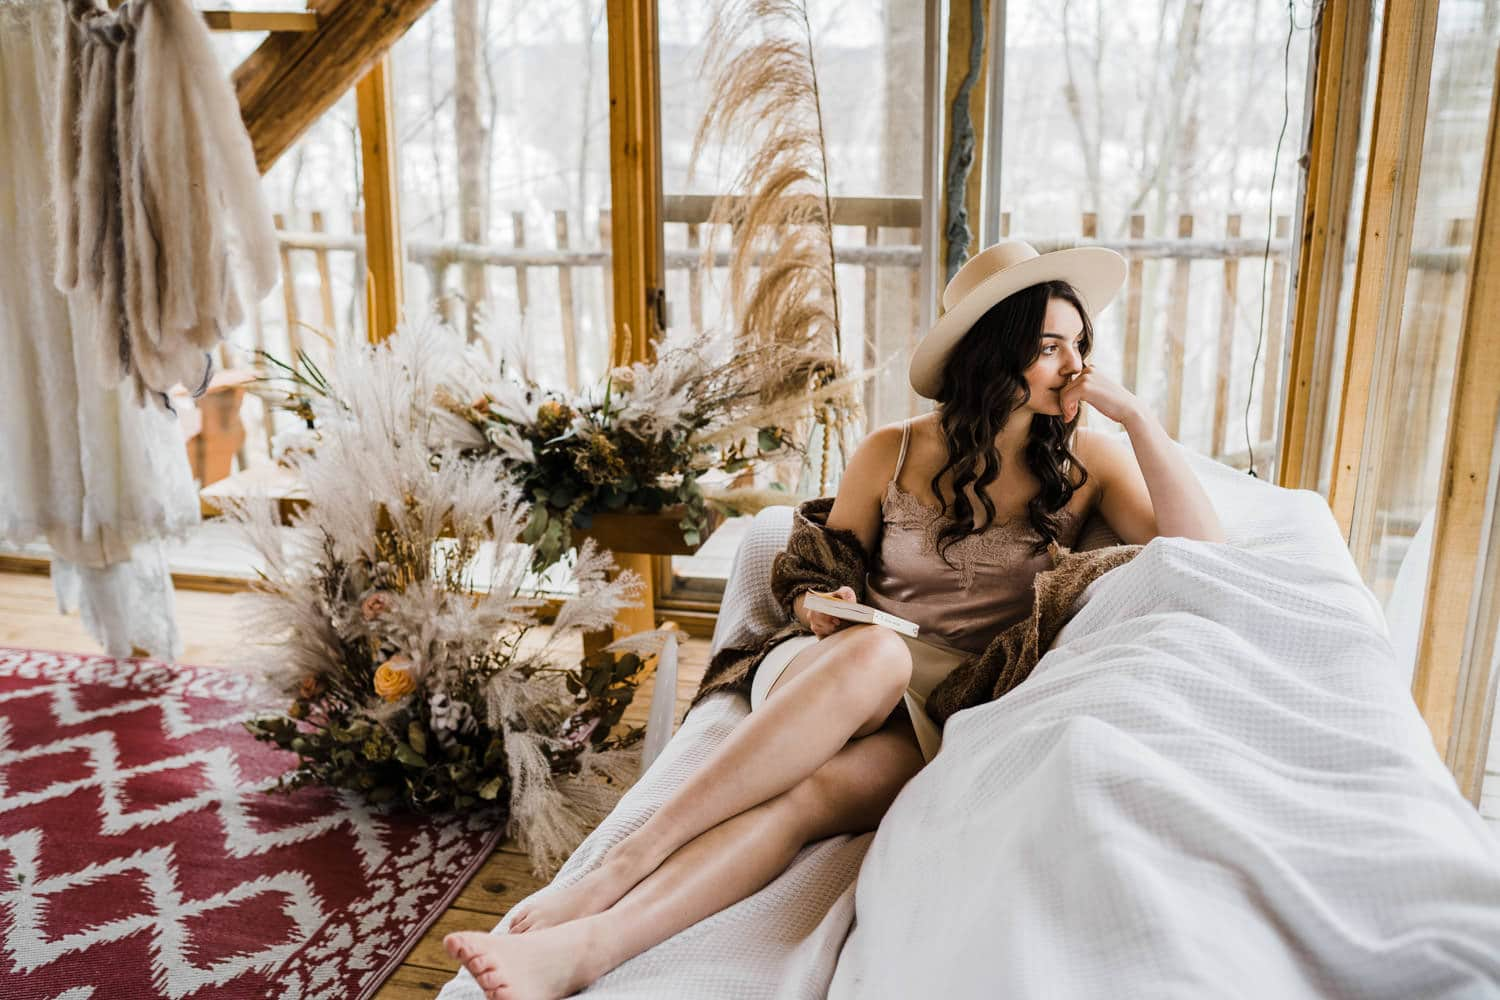 bride sits on couch and looks out window - cabin in the woods - boho elopement